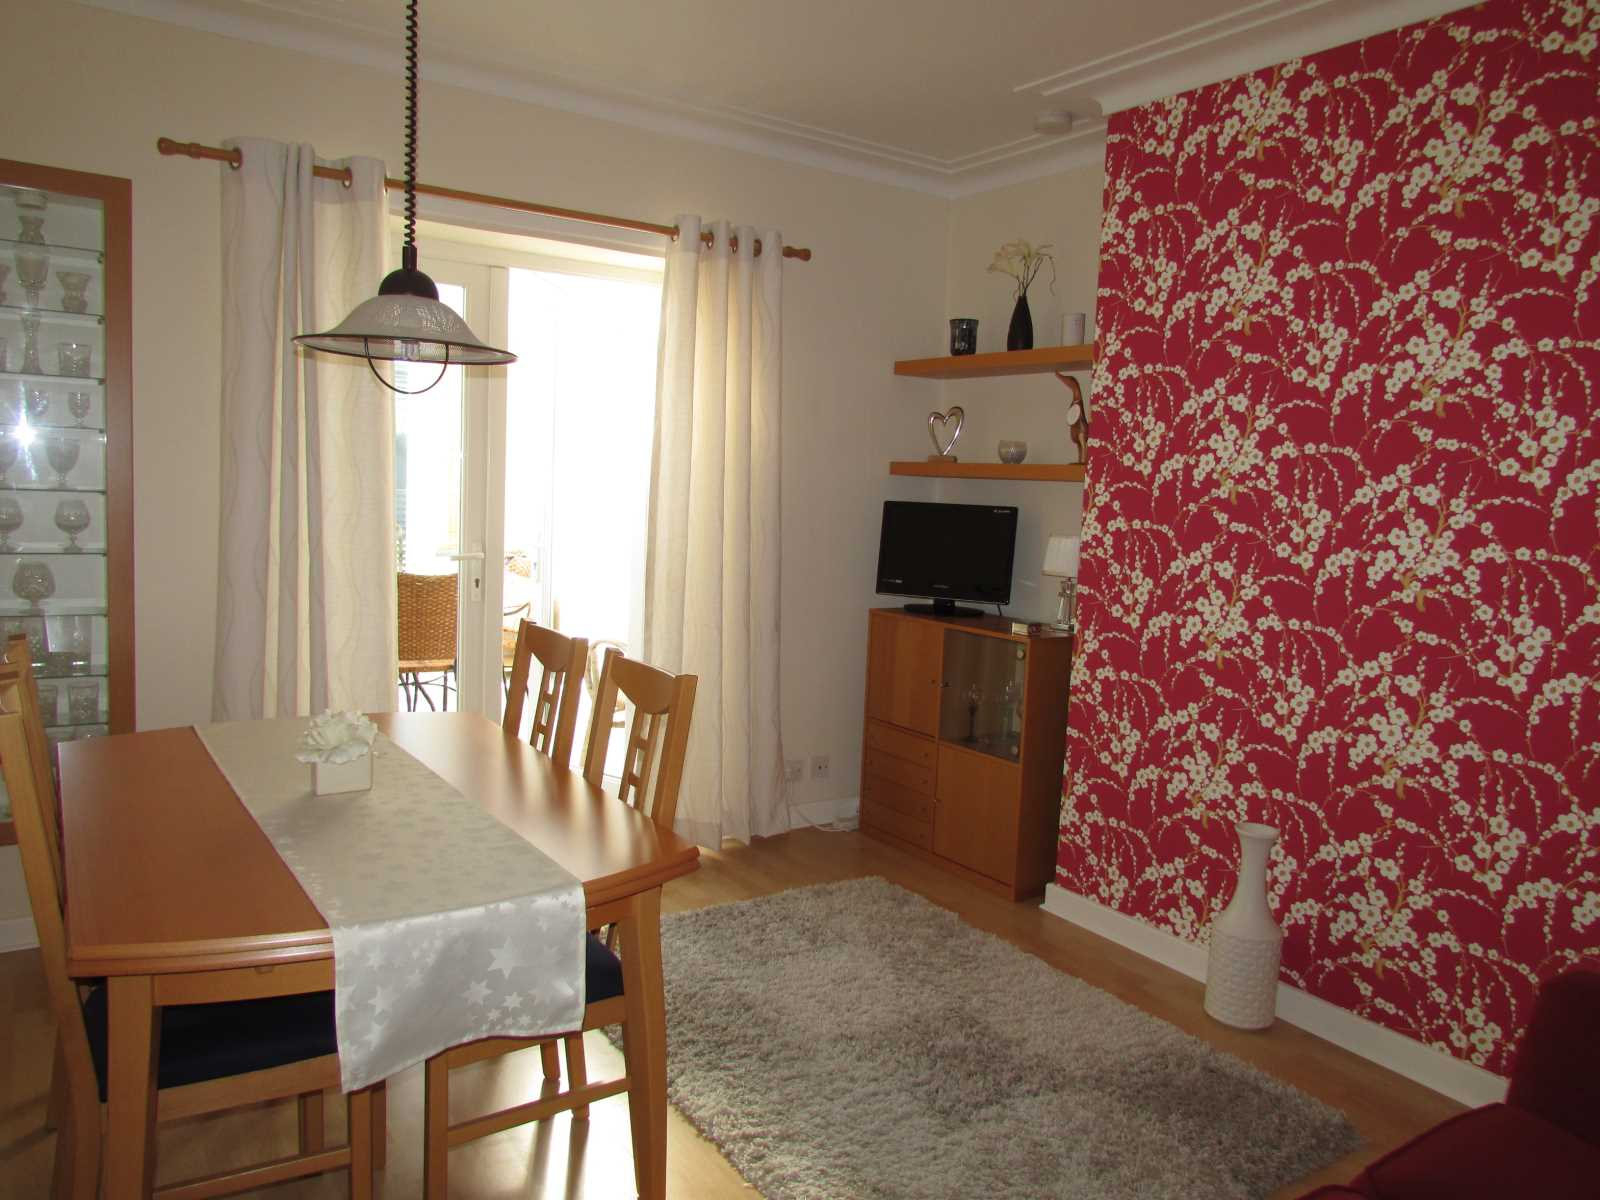 Hilbre, 124 Long Lane, Honley, HD9 6EB